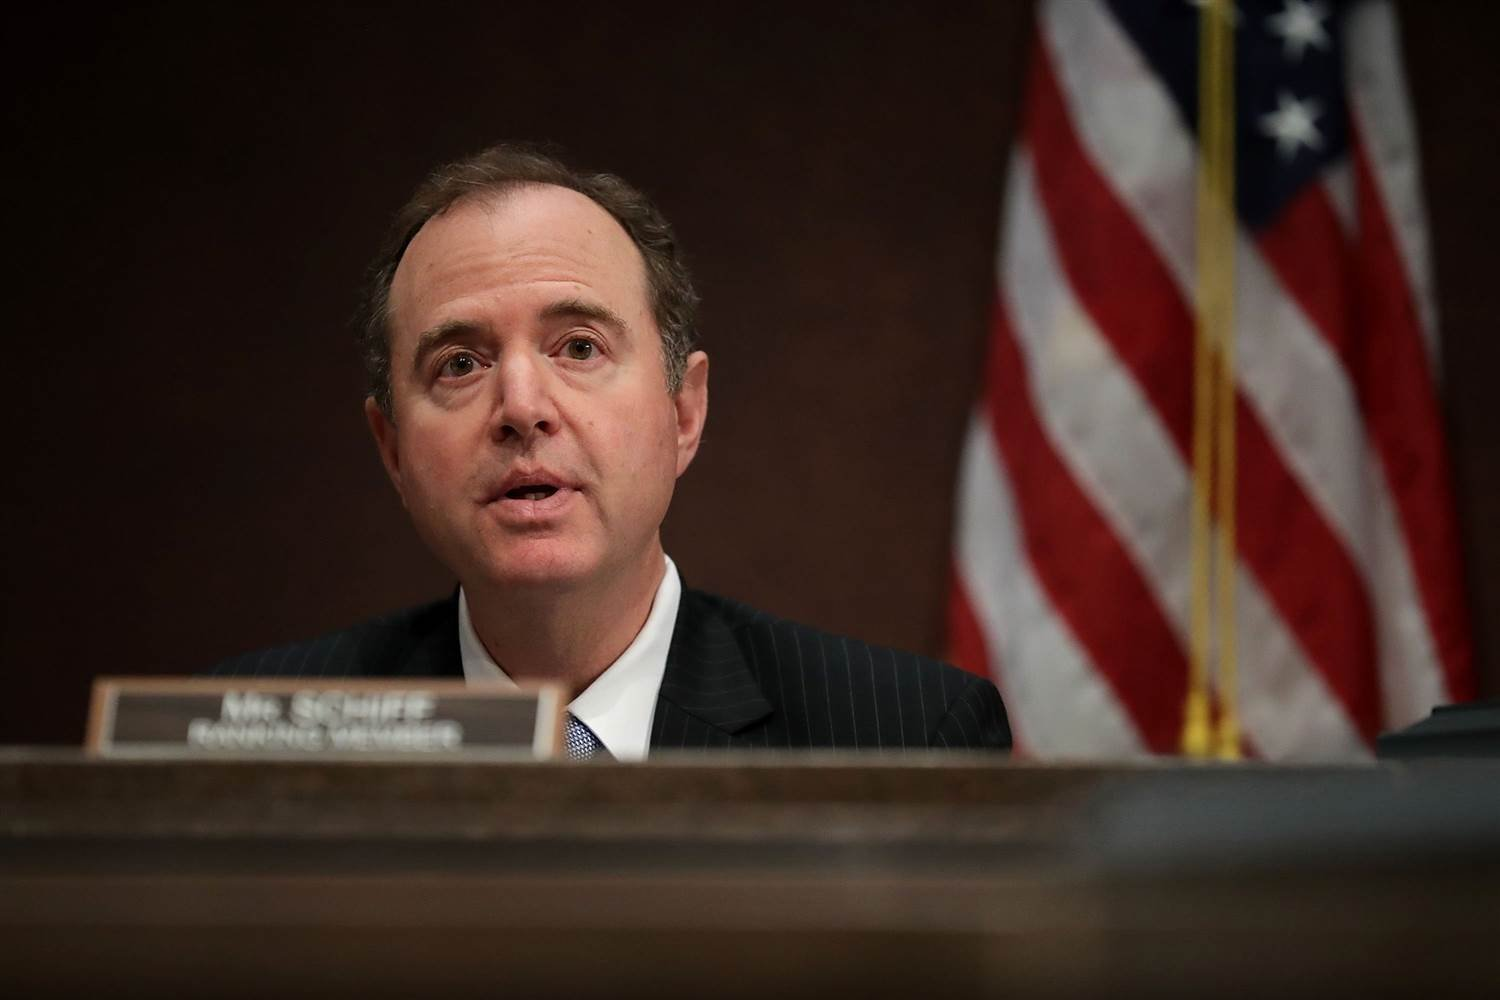 House Intelligence Committee Expected To Vote On Release Of Democratic Memo